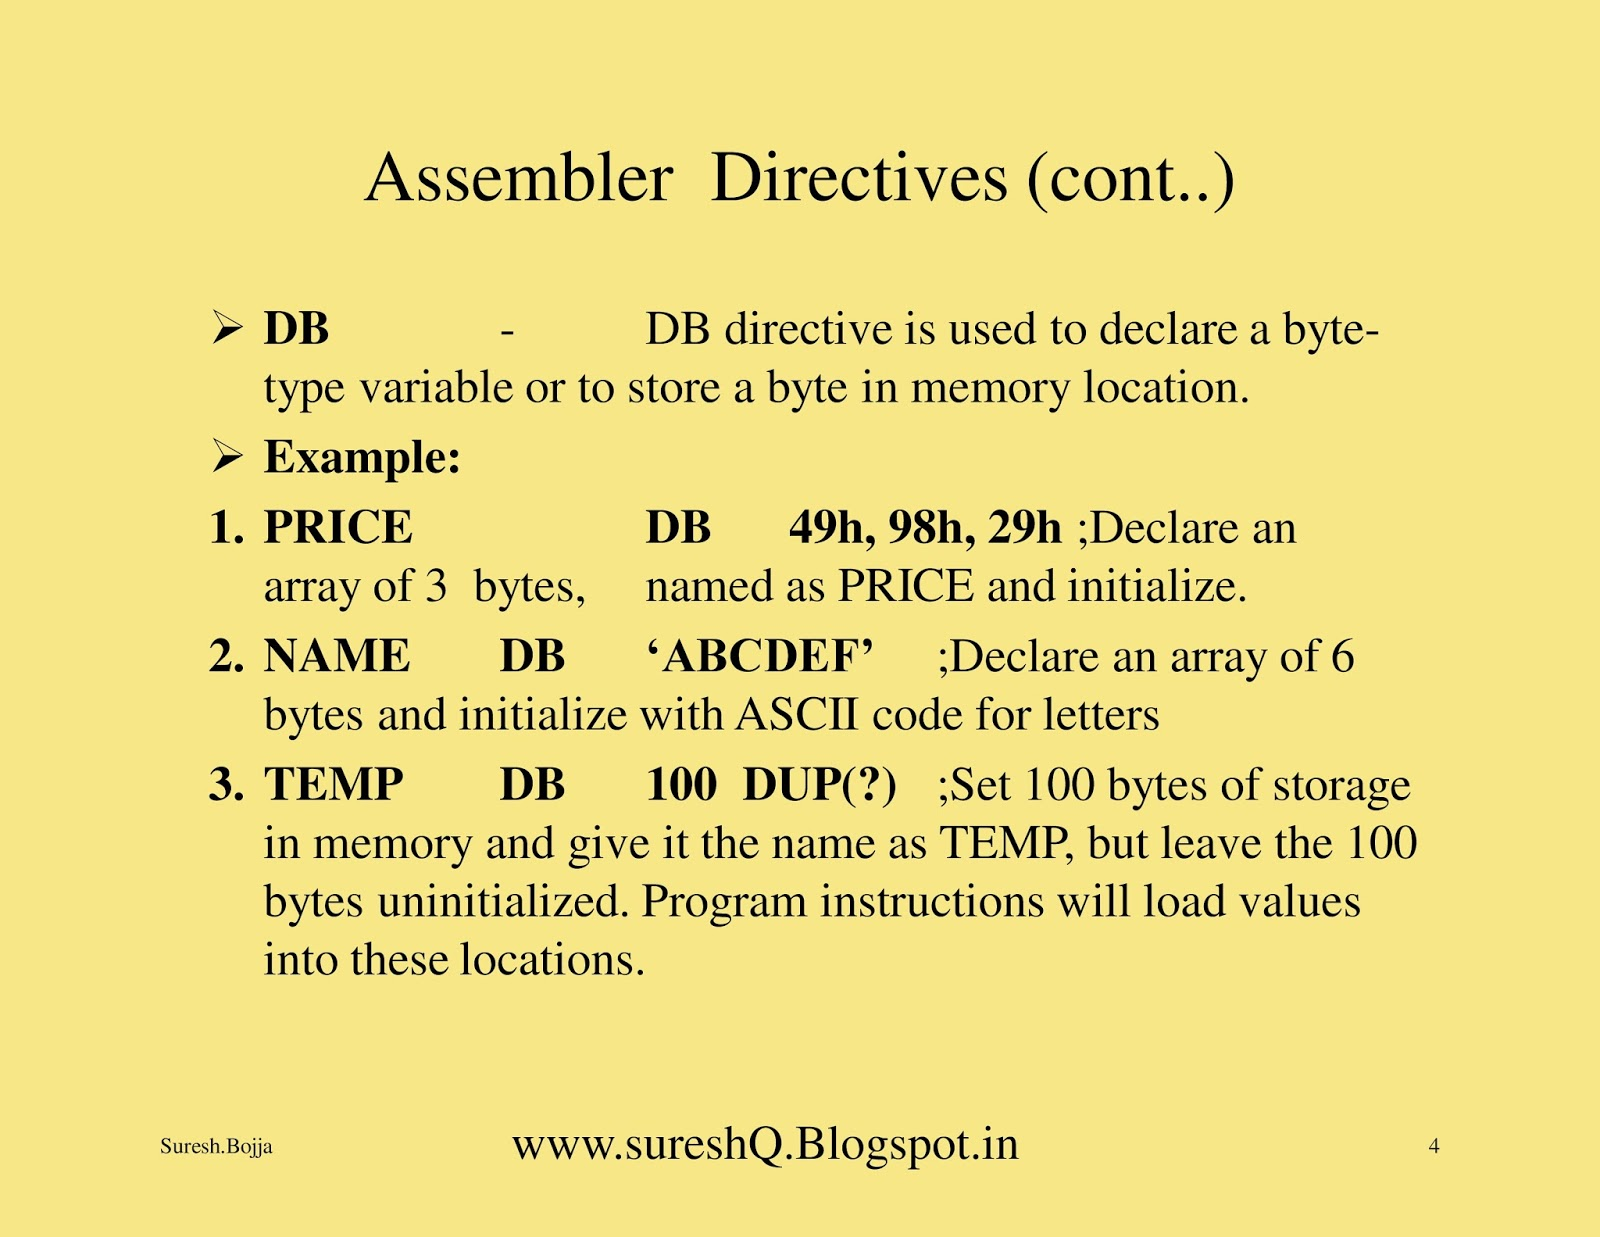 Examples List on Assembler Directives Of 8086 Microprocessor